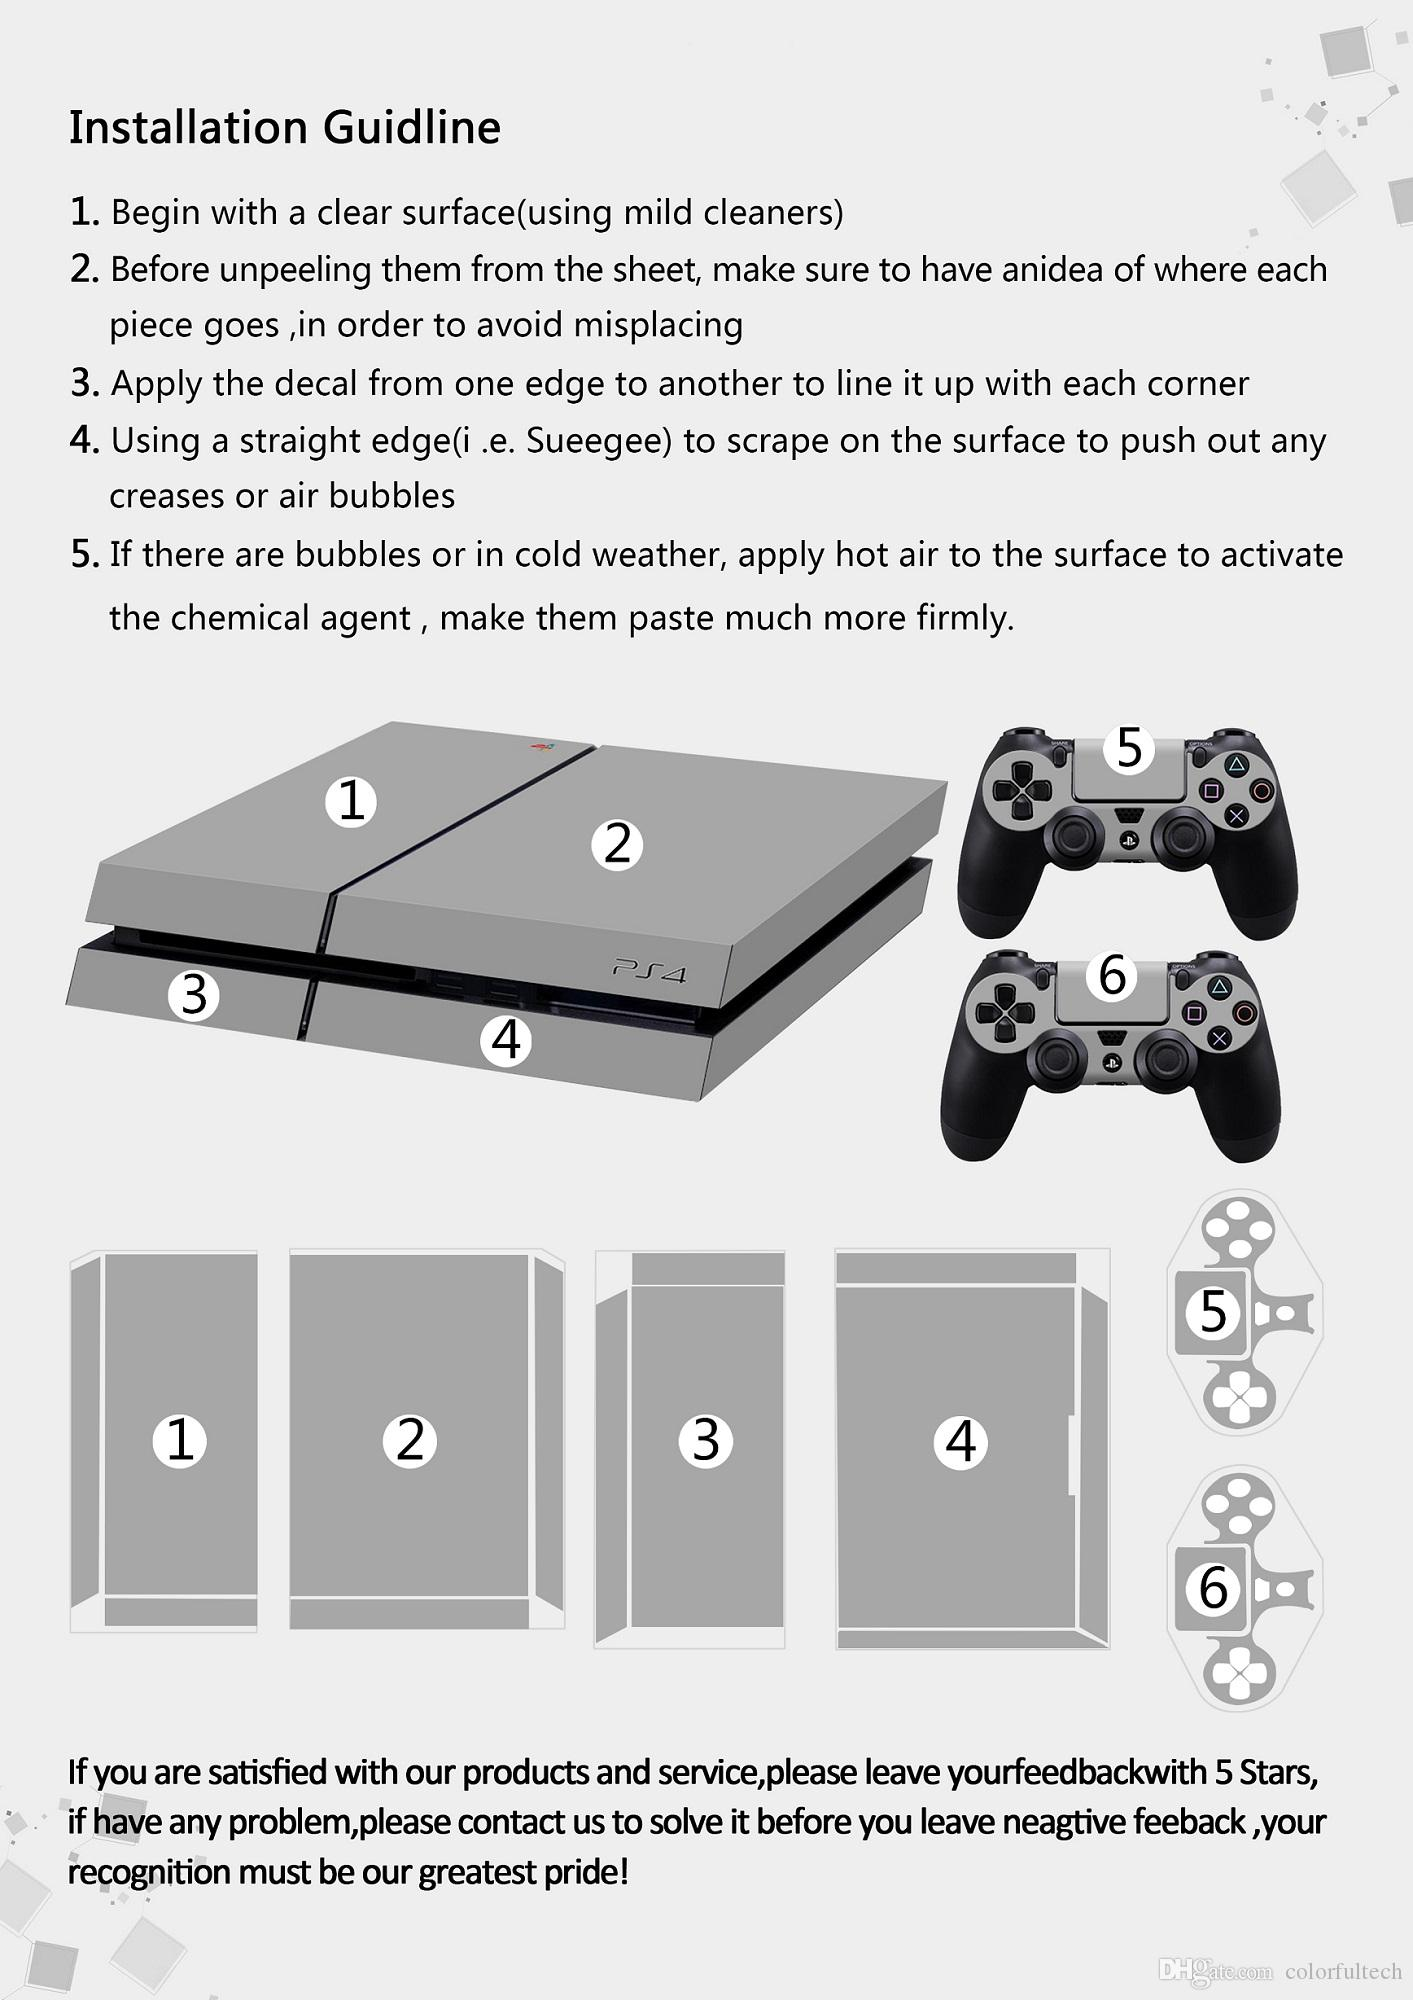 Assassin's Creed PS4 Vinyl Protective Decal Cover Skin Set for Console and DualShock 4 Controllers - PlayStation 4